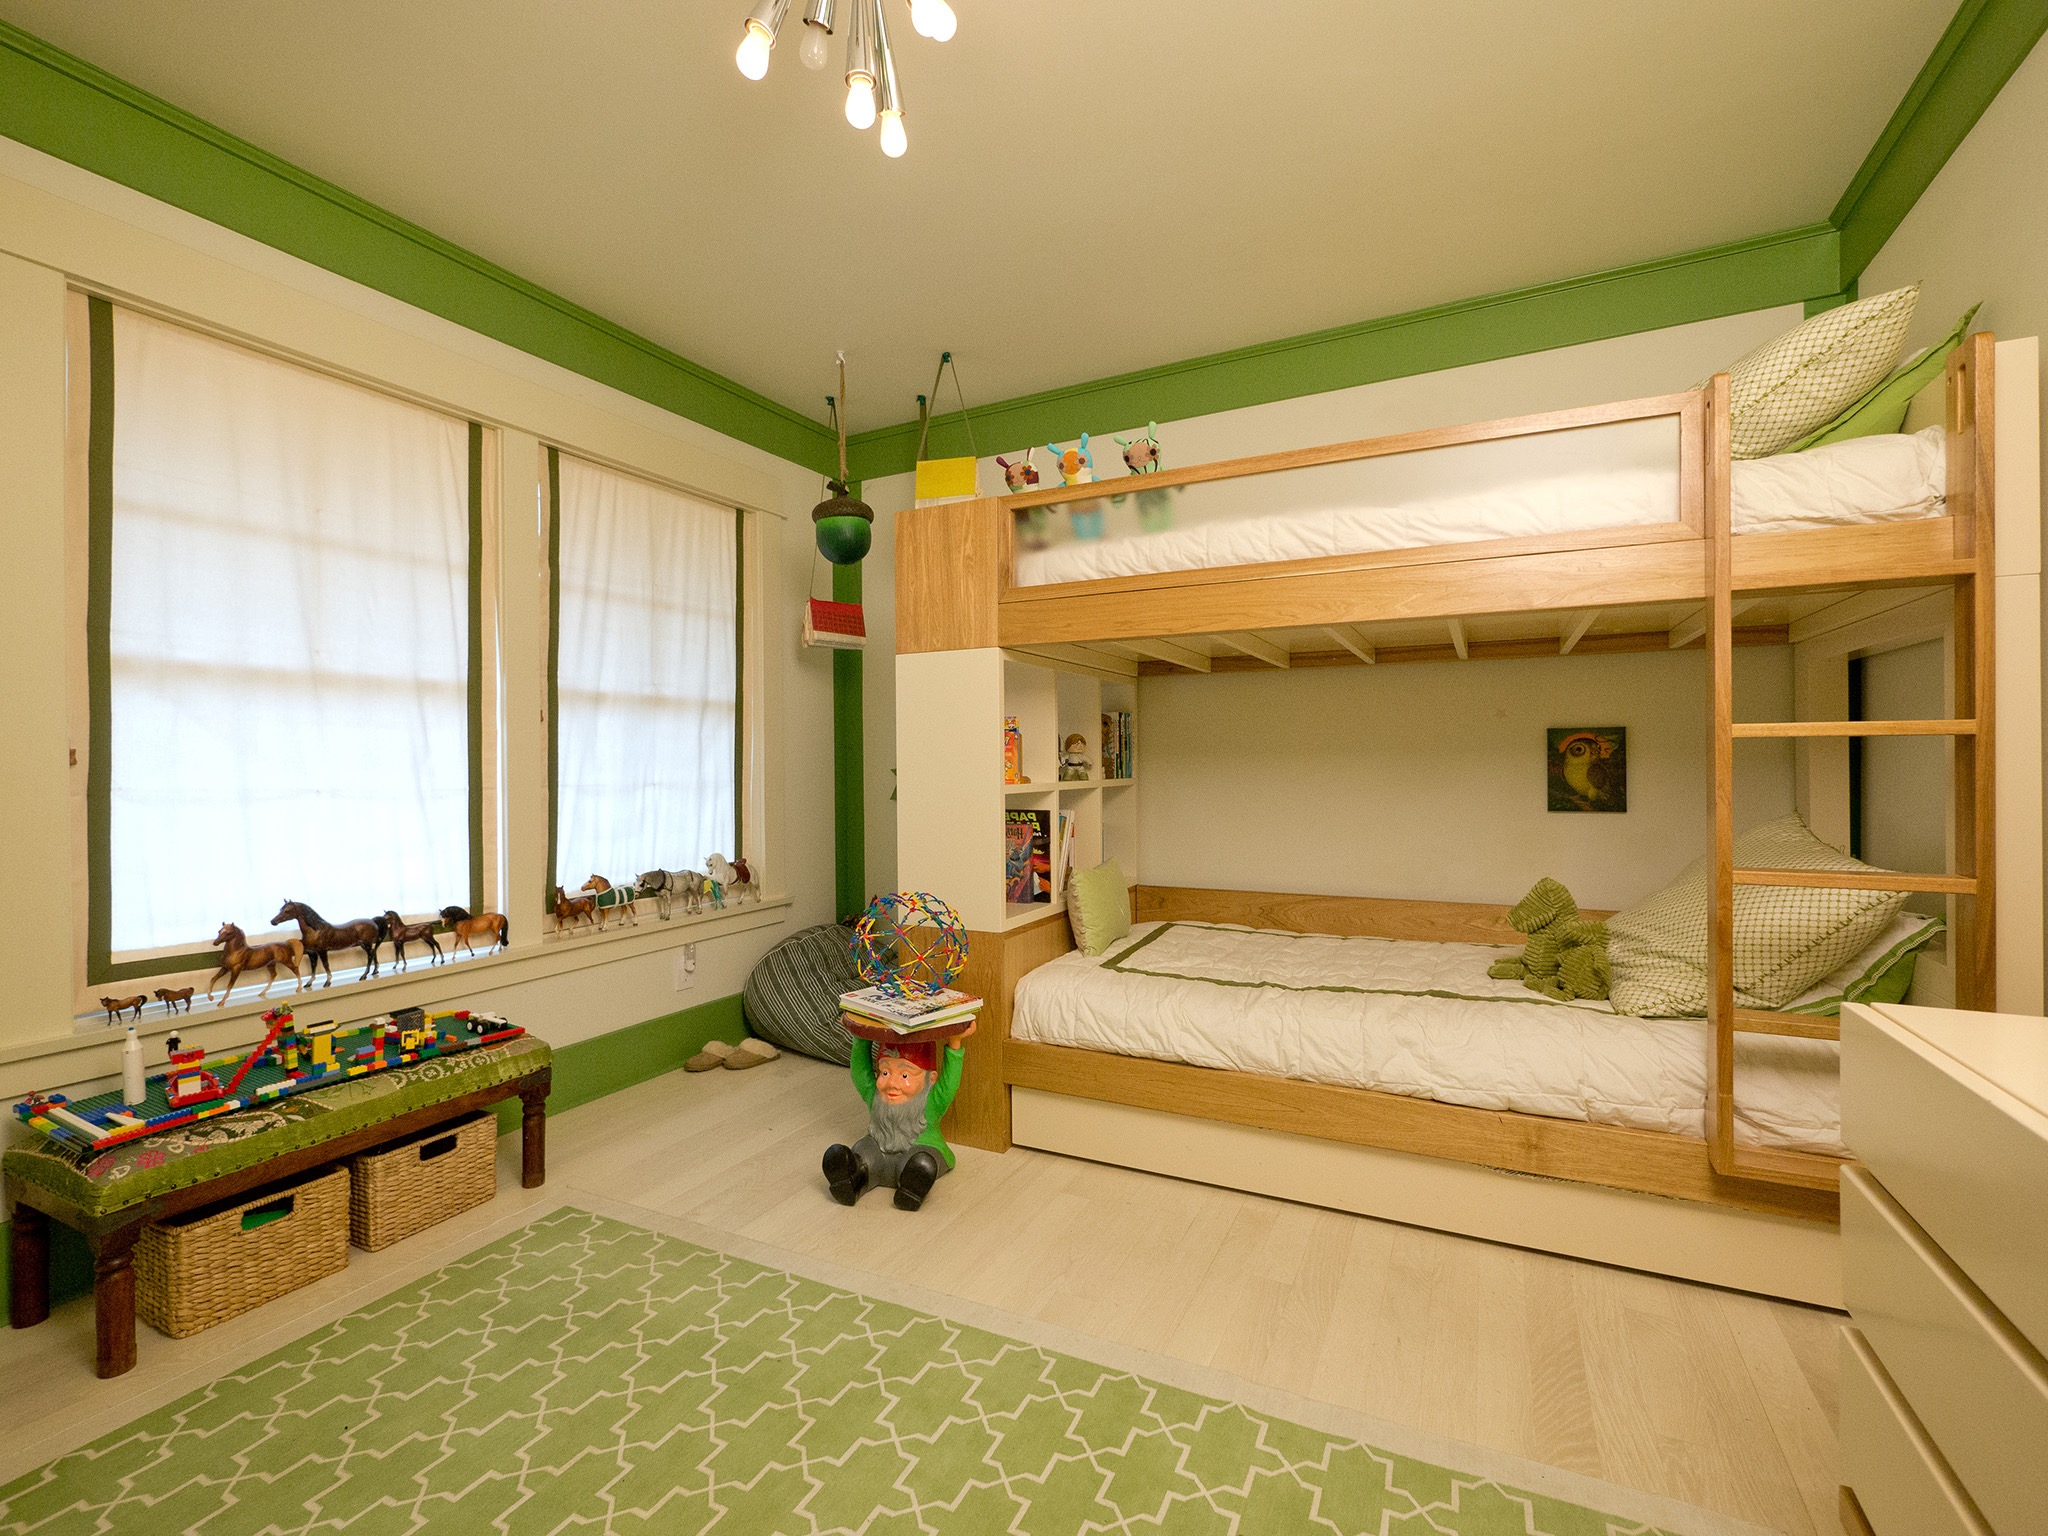 Minimalist Kids Bedroom For Boys With Bedroom With Bunk Bed (Image 22 of 35)